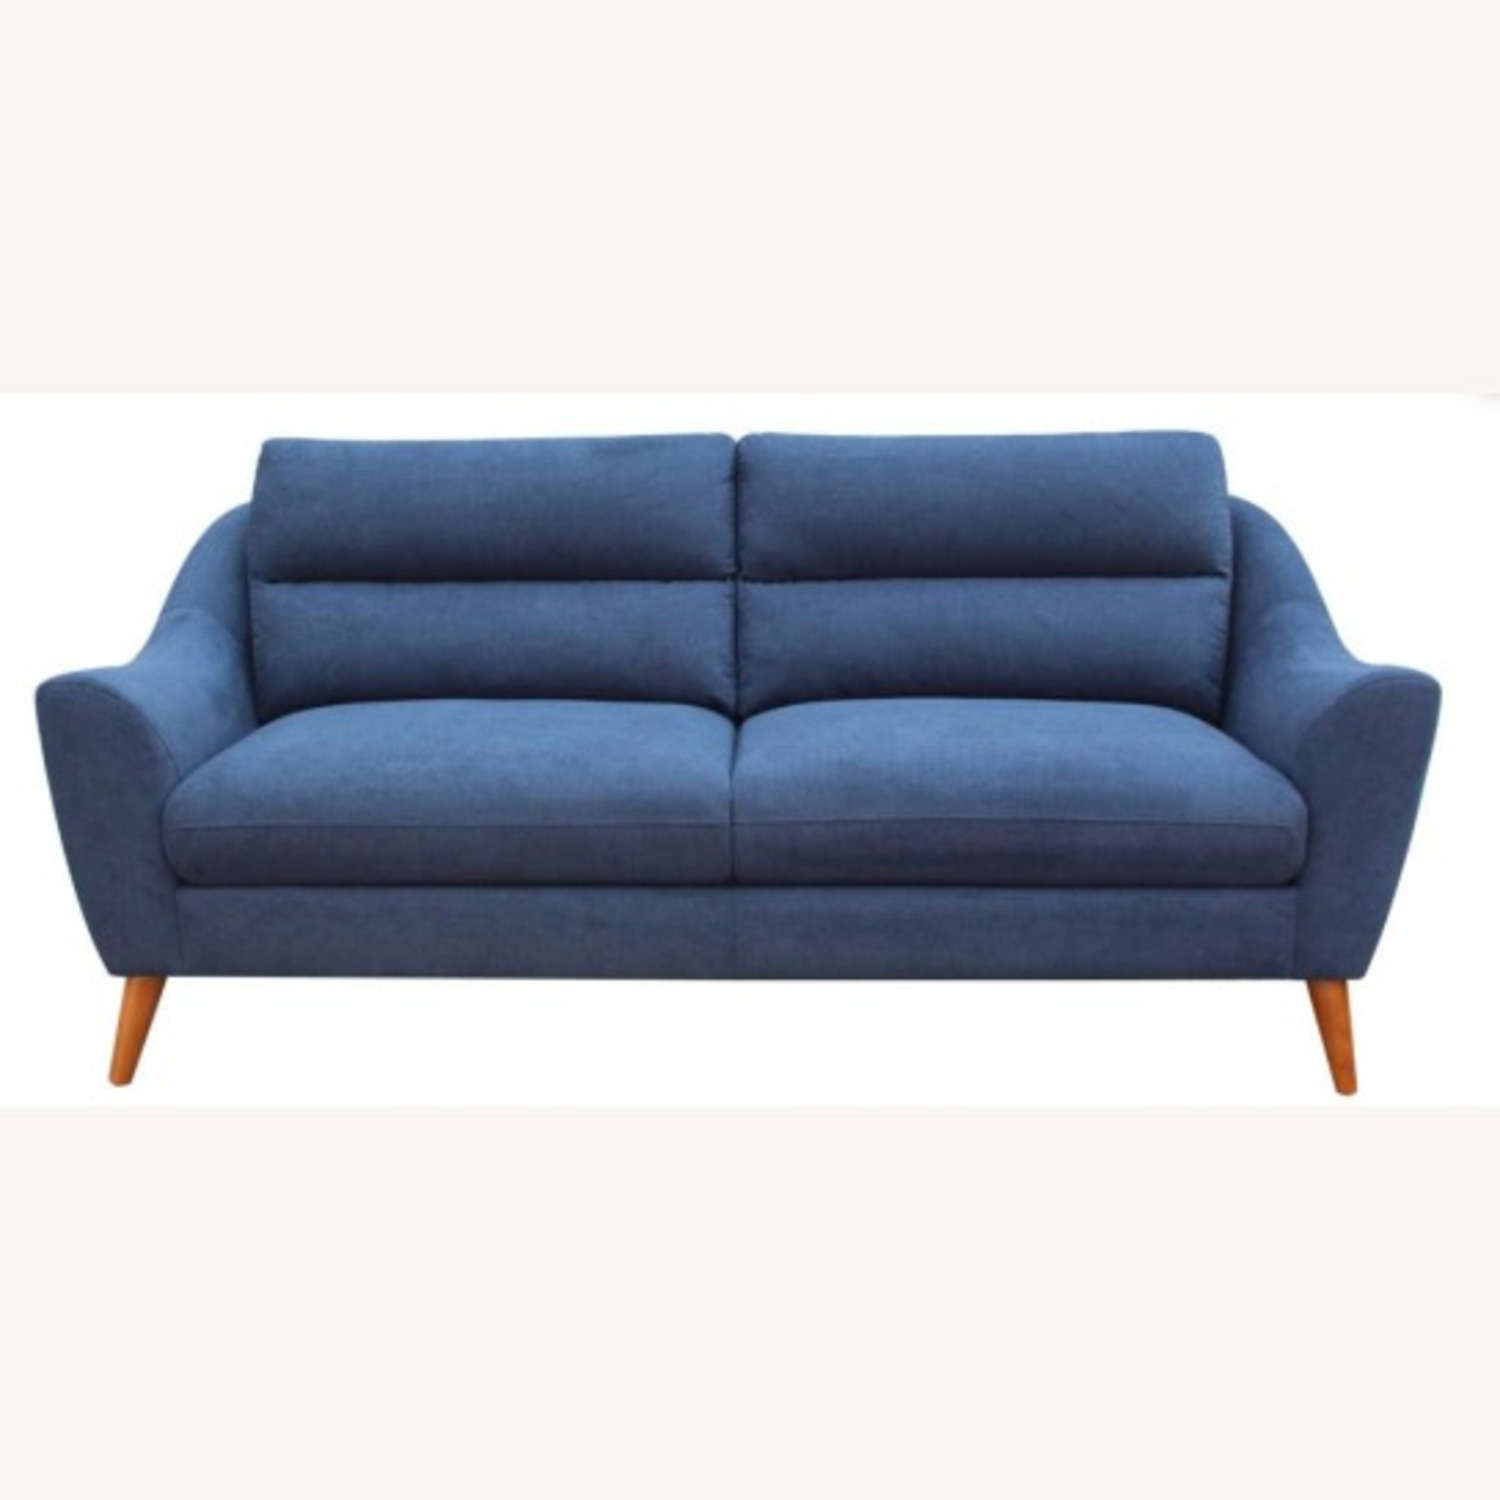 Sofa In Navy Blue Woven Fabric W/ Tapered Legs - image-0